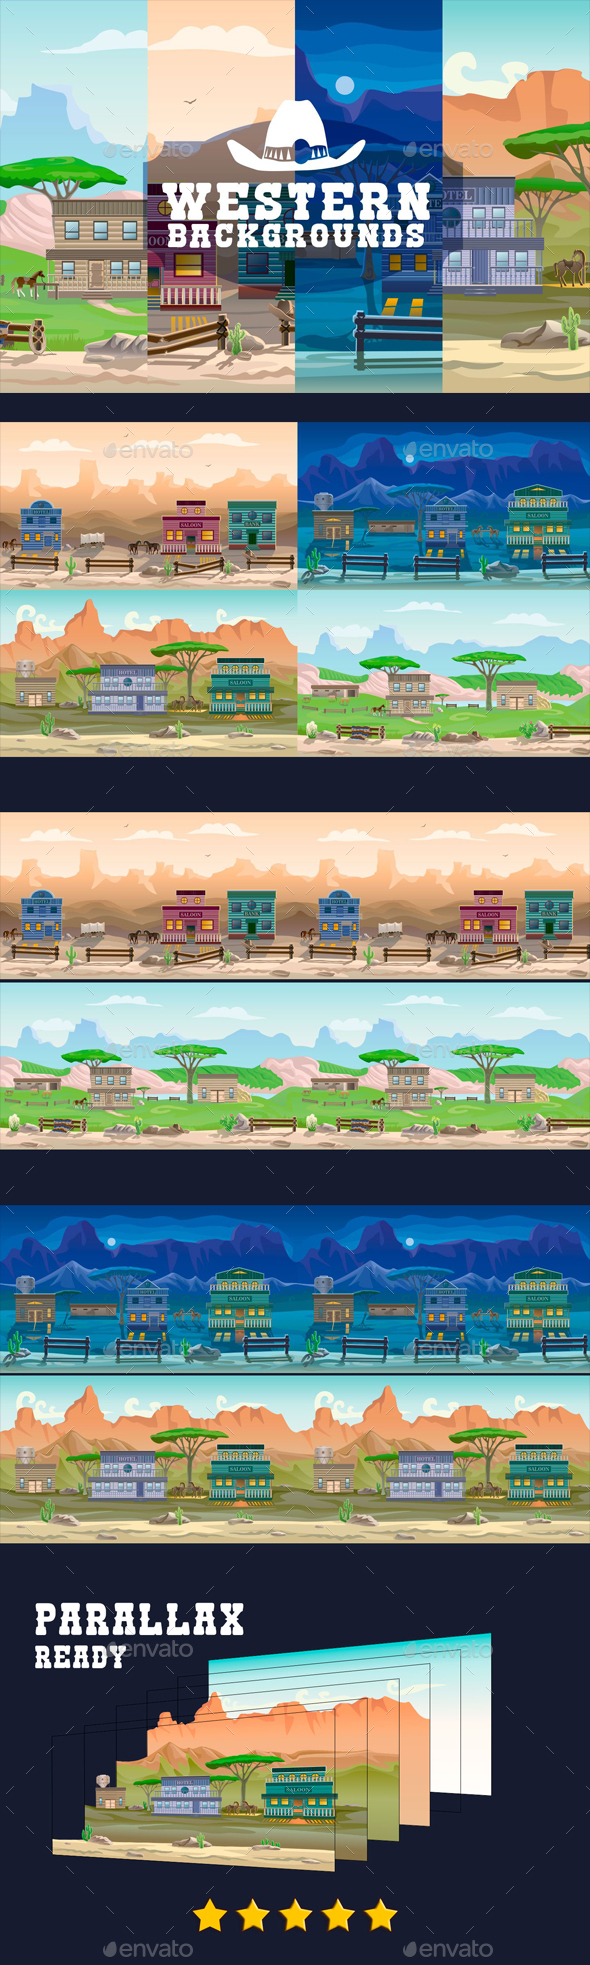 Parallax Western Backgrounds - Backgrounds Game Assets